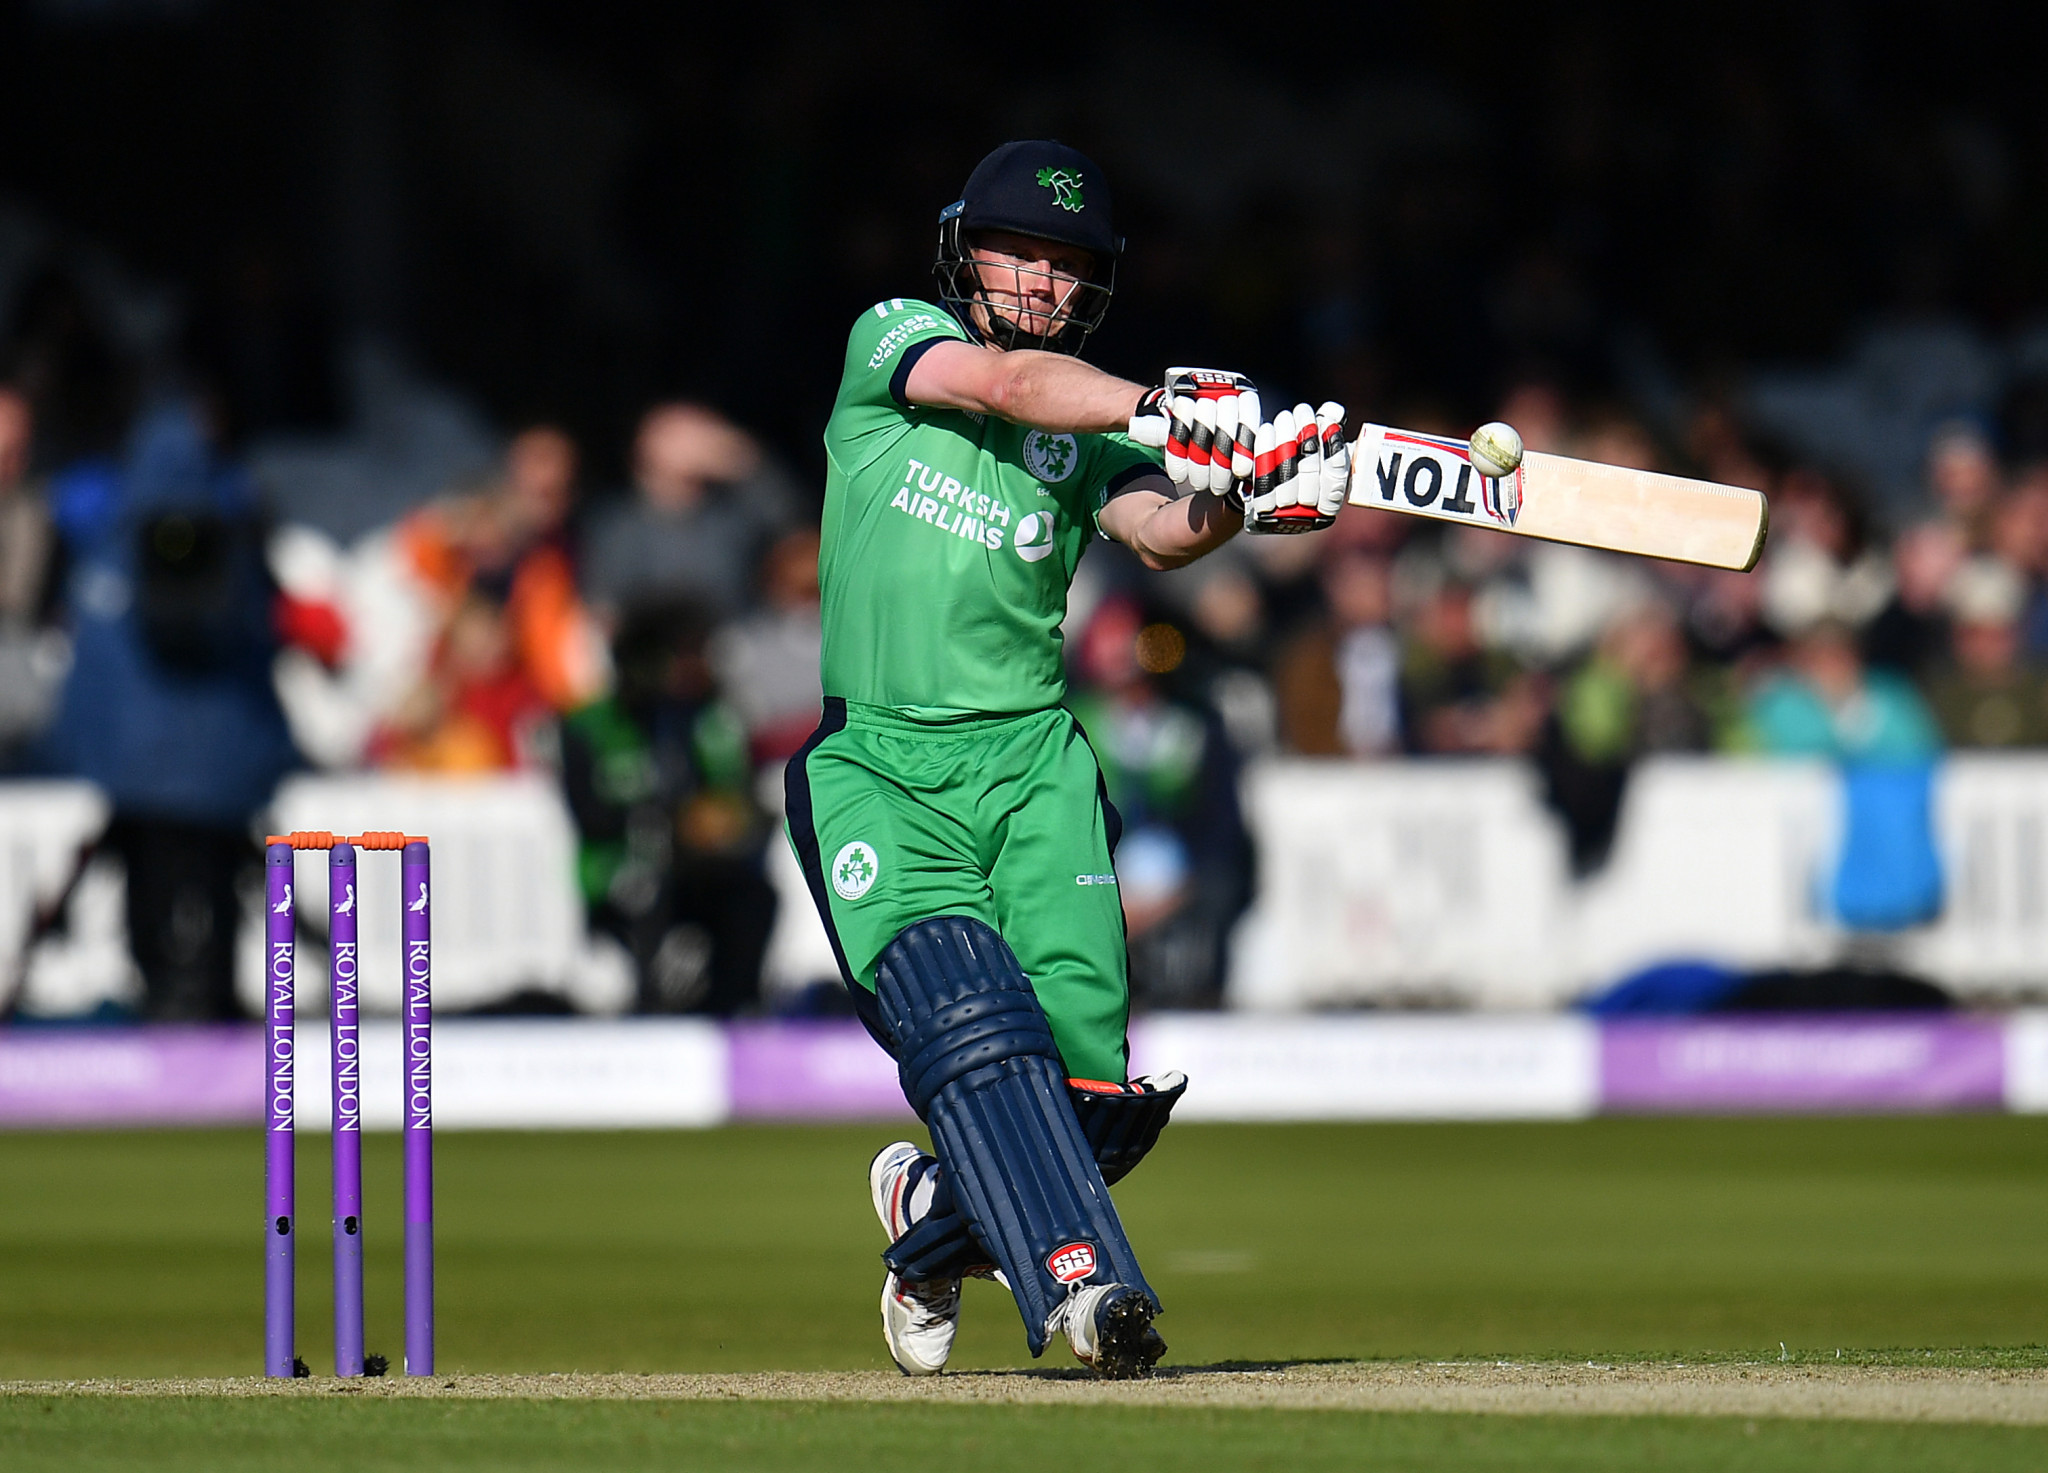 Irish cricketers to play Pakistan in first test match